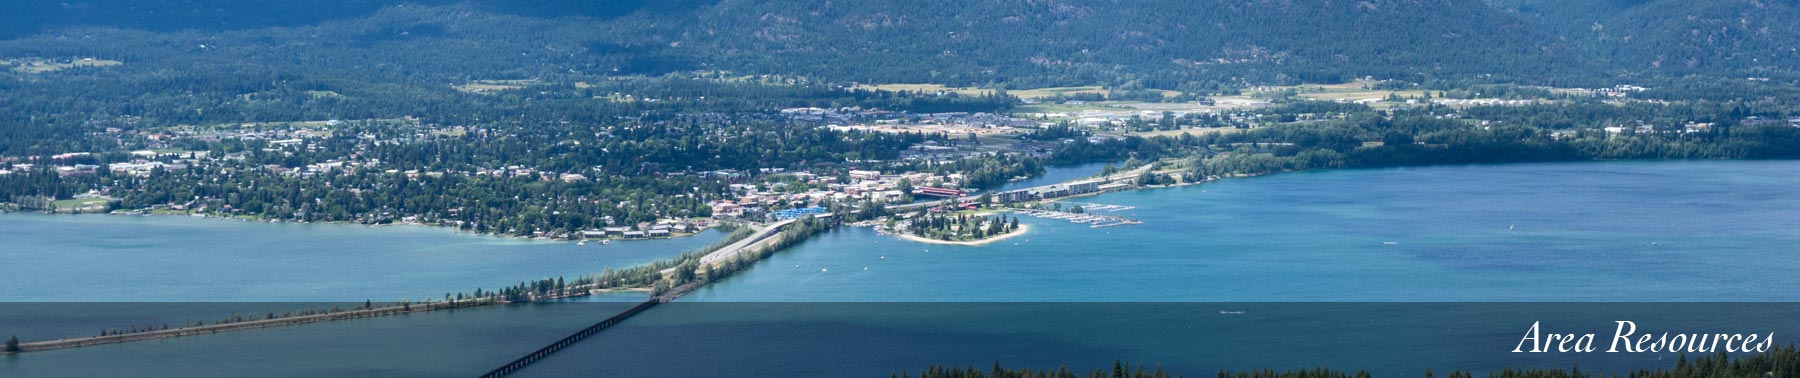 Sandpoint Area Resources and Links